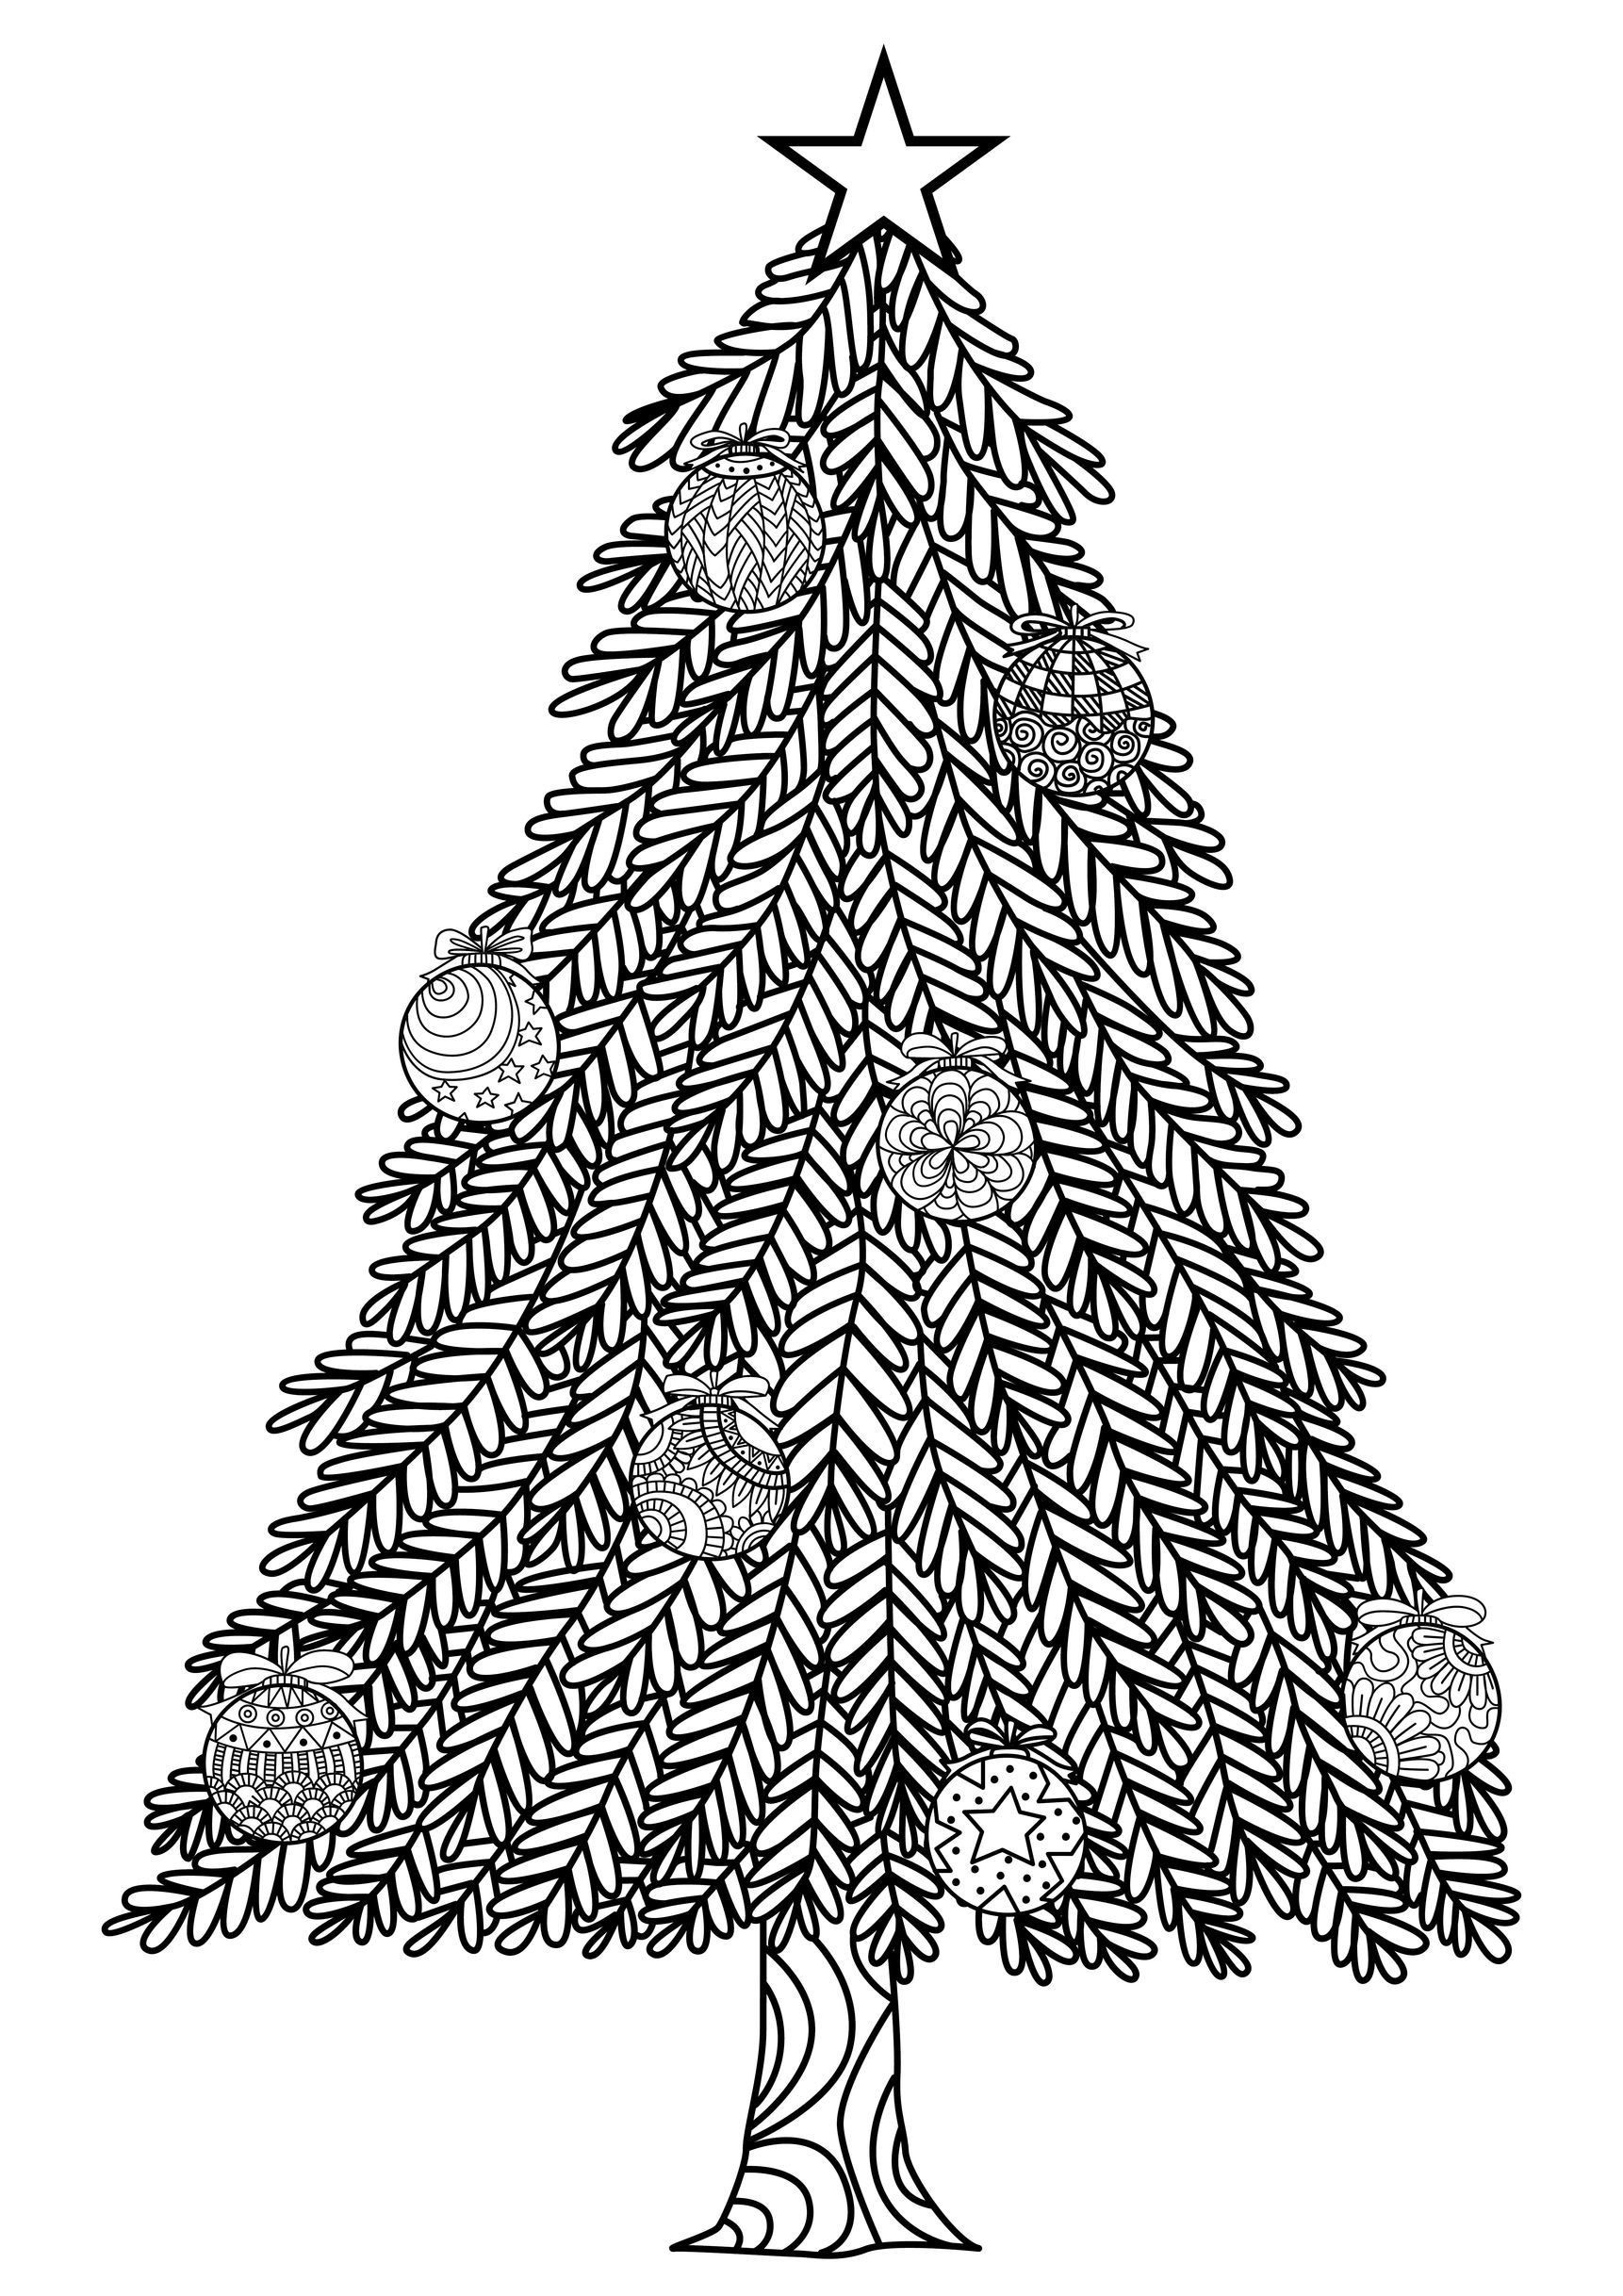 christmas tree zentangle style with christmas balls and a big star in the top from - Christmas Trees Coloring Pages